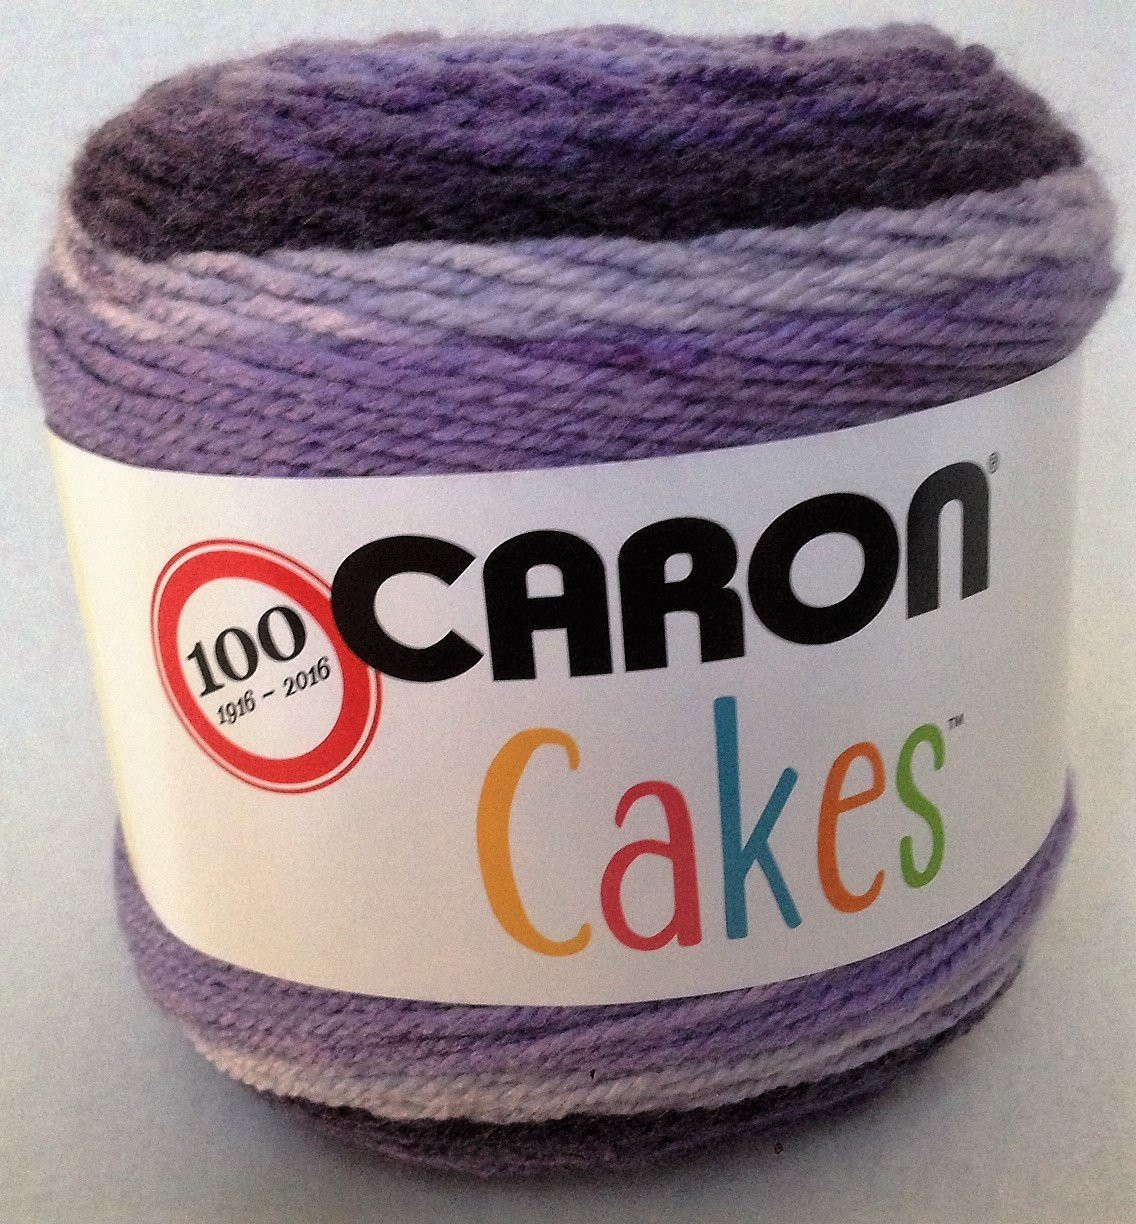 Best Of Caron Cakes Bumbleberry Caron Yarn Wool Yarn Acrylic Yarn Caron Cakes Yarn Colors Of Unique 41 Photos Caron Cakes Yarn Colors